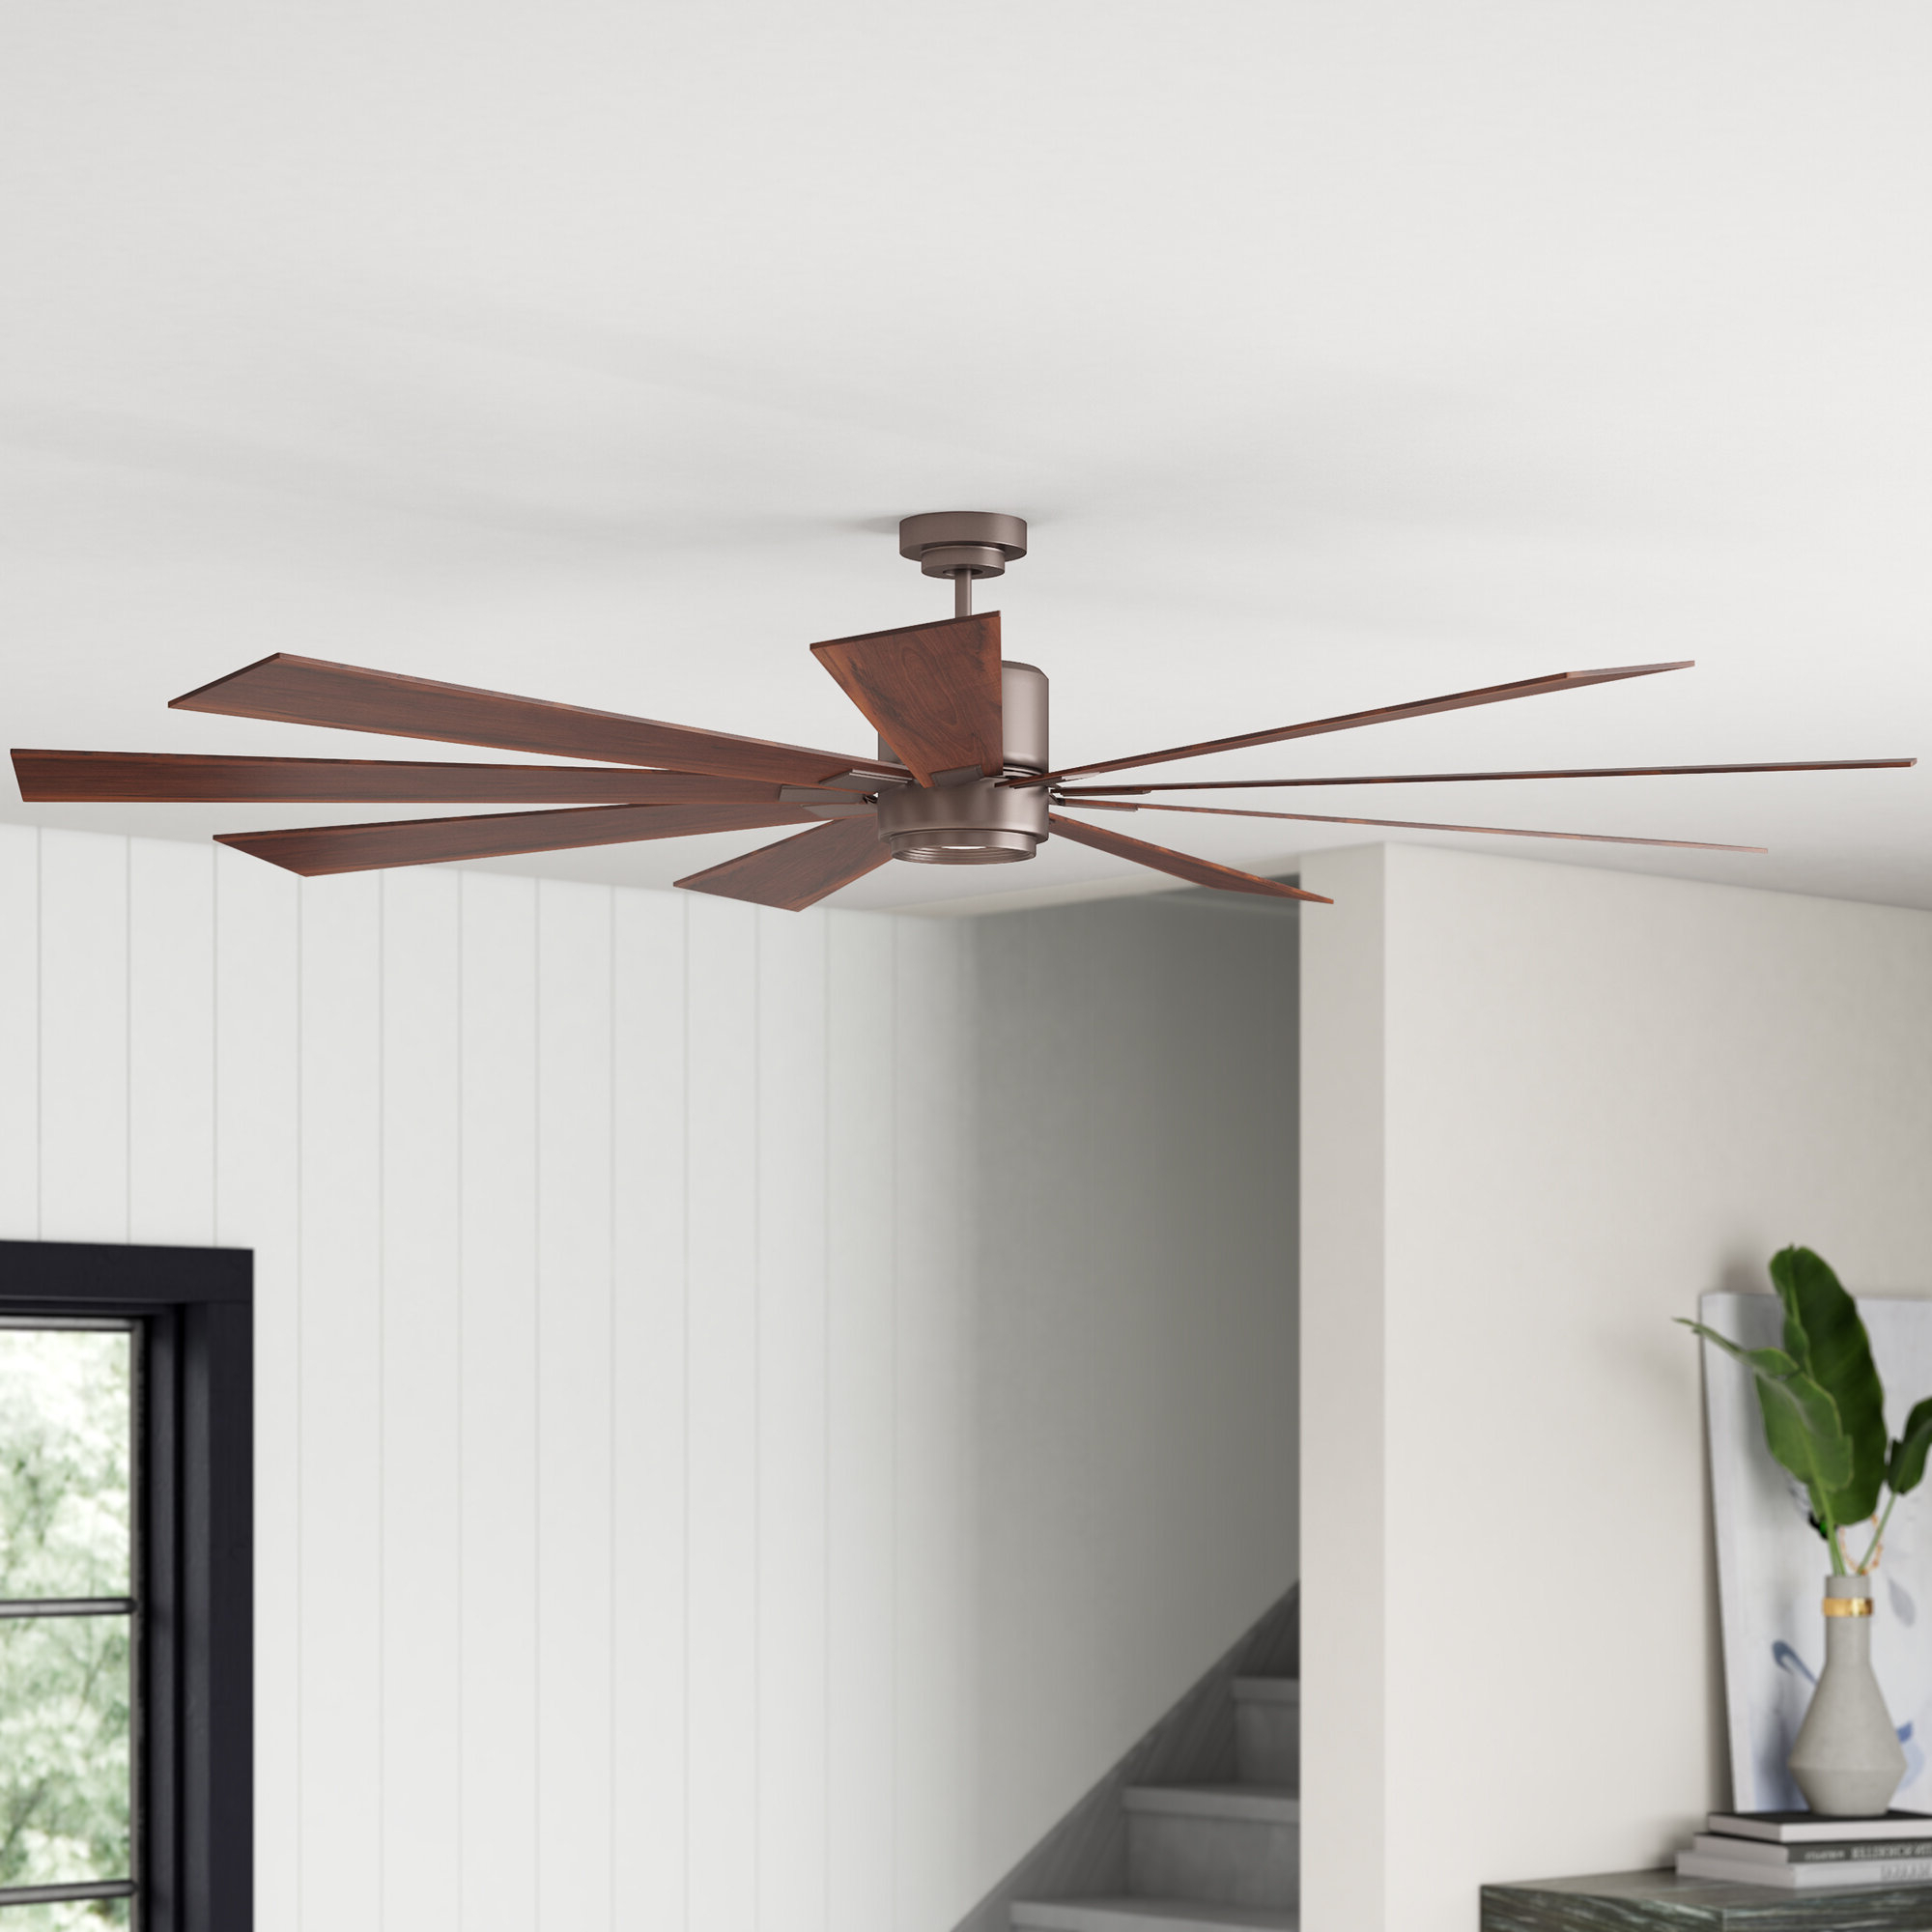 "Well Known 72"" Mcdavid 9 Blade Led Ceiling Fan With Remote, Light Kit Included For Bankston 8 Blade Led Ceiling Fans (View 11 of 20)"